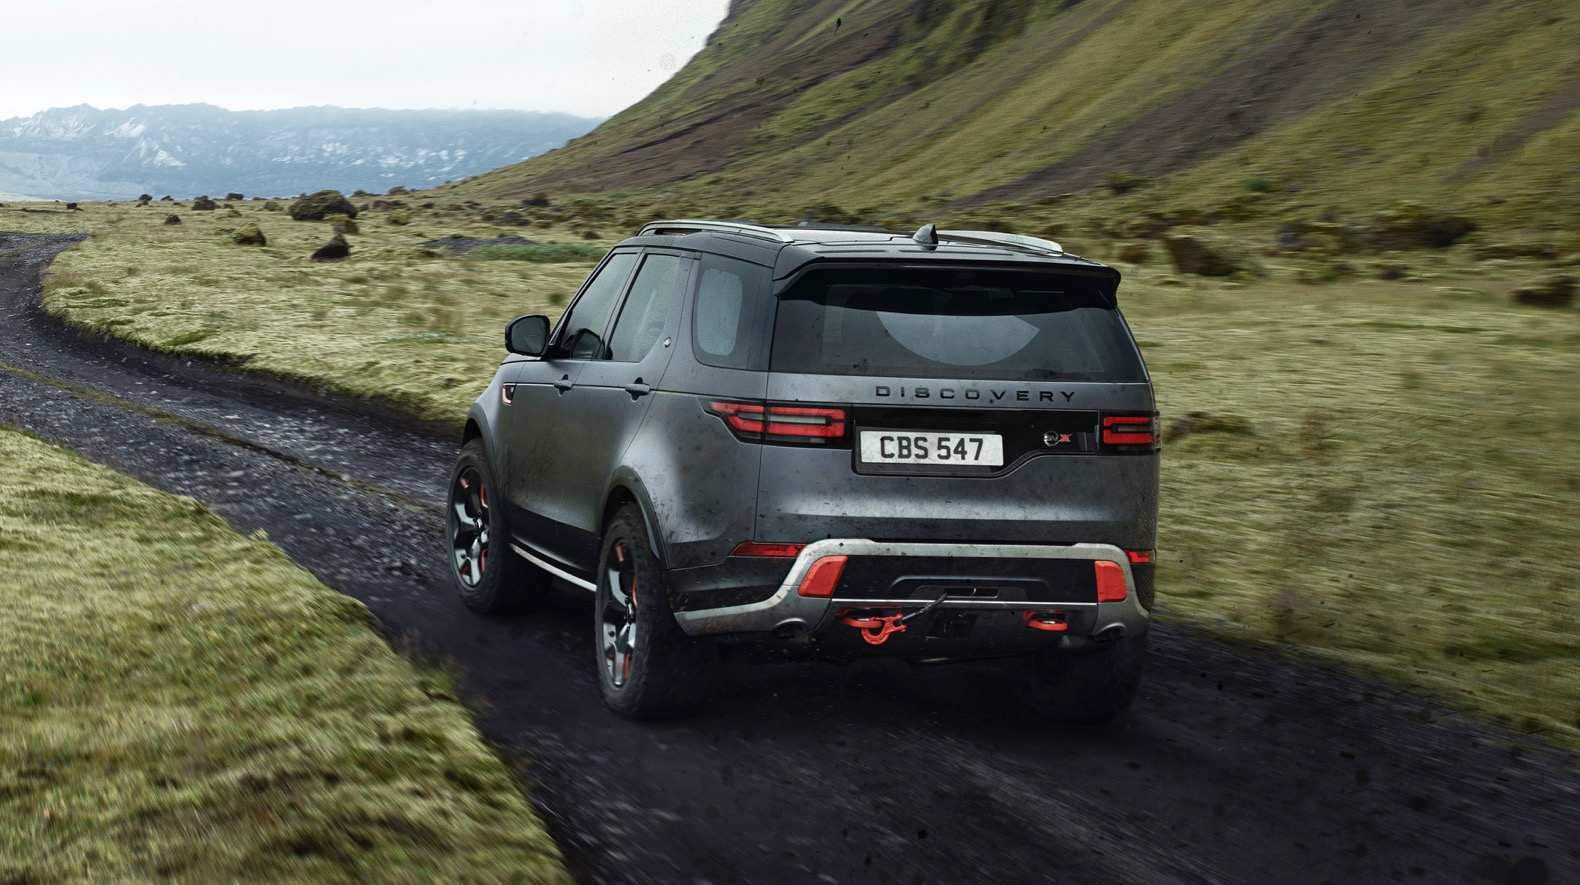 77 Gallery of 2019 Land Rover Discovery Svx Pricing with 2019 Land Rover Discovery Svx